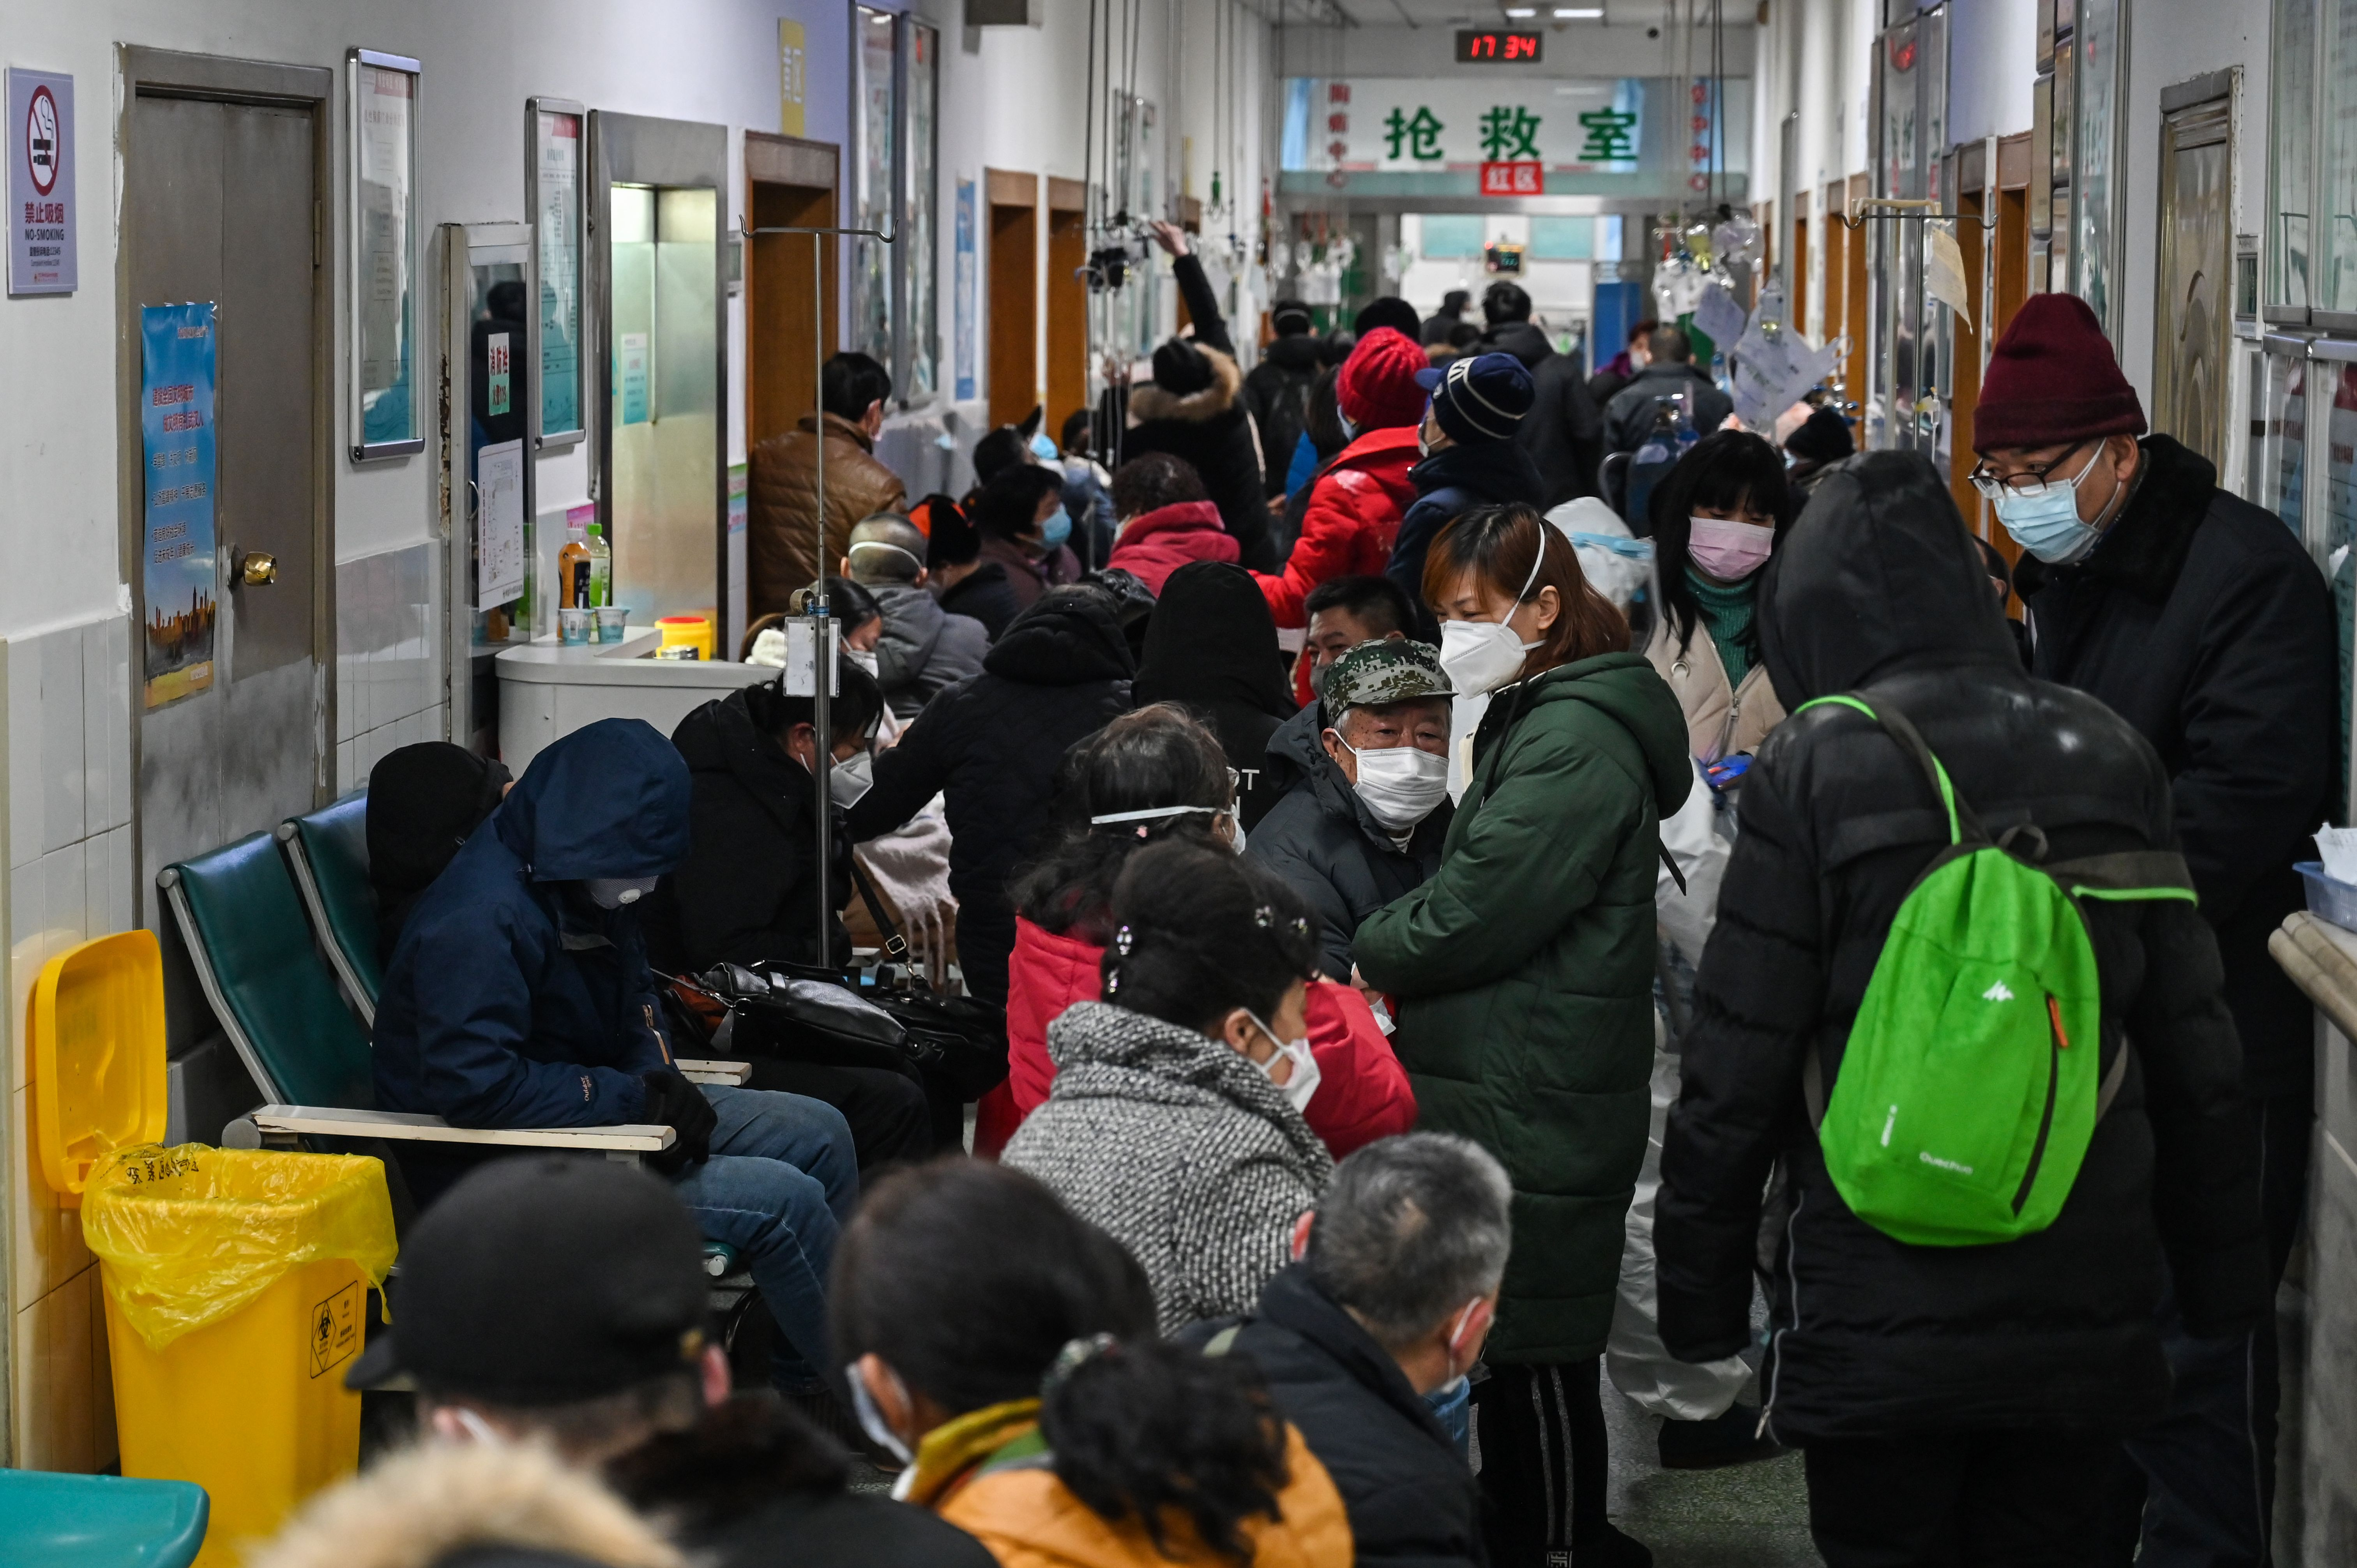 People wearing face masks wait for medical attention at Wuhan Red Cross Hospital in Wuhan on Saturday